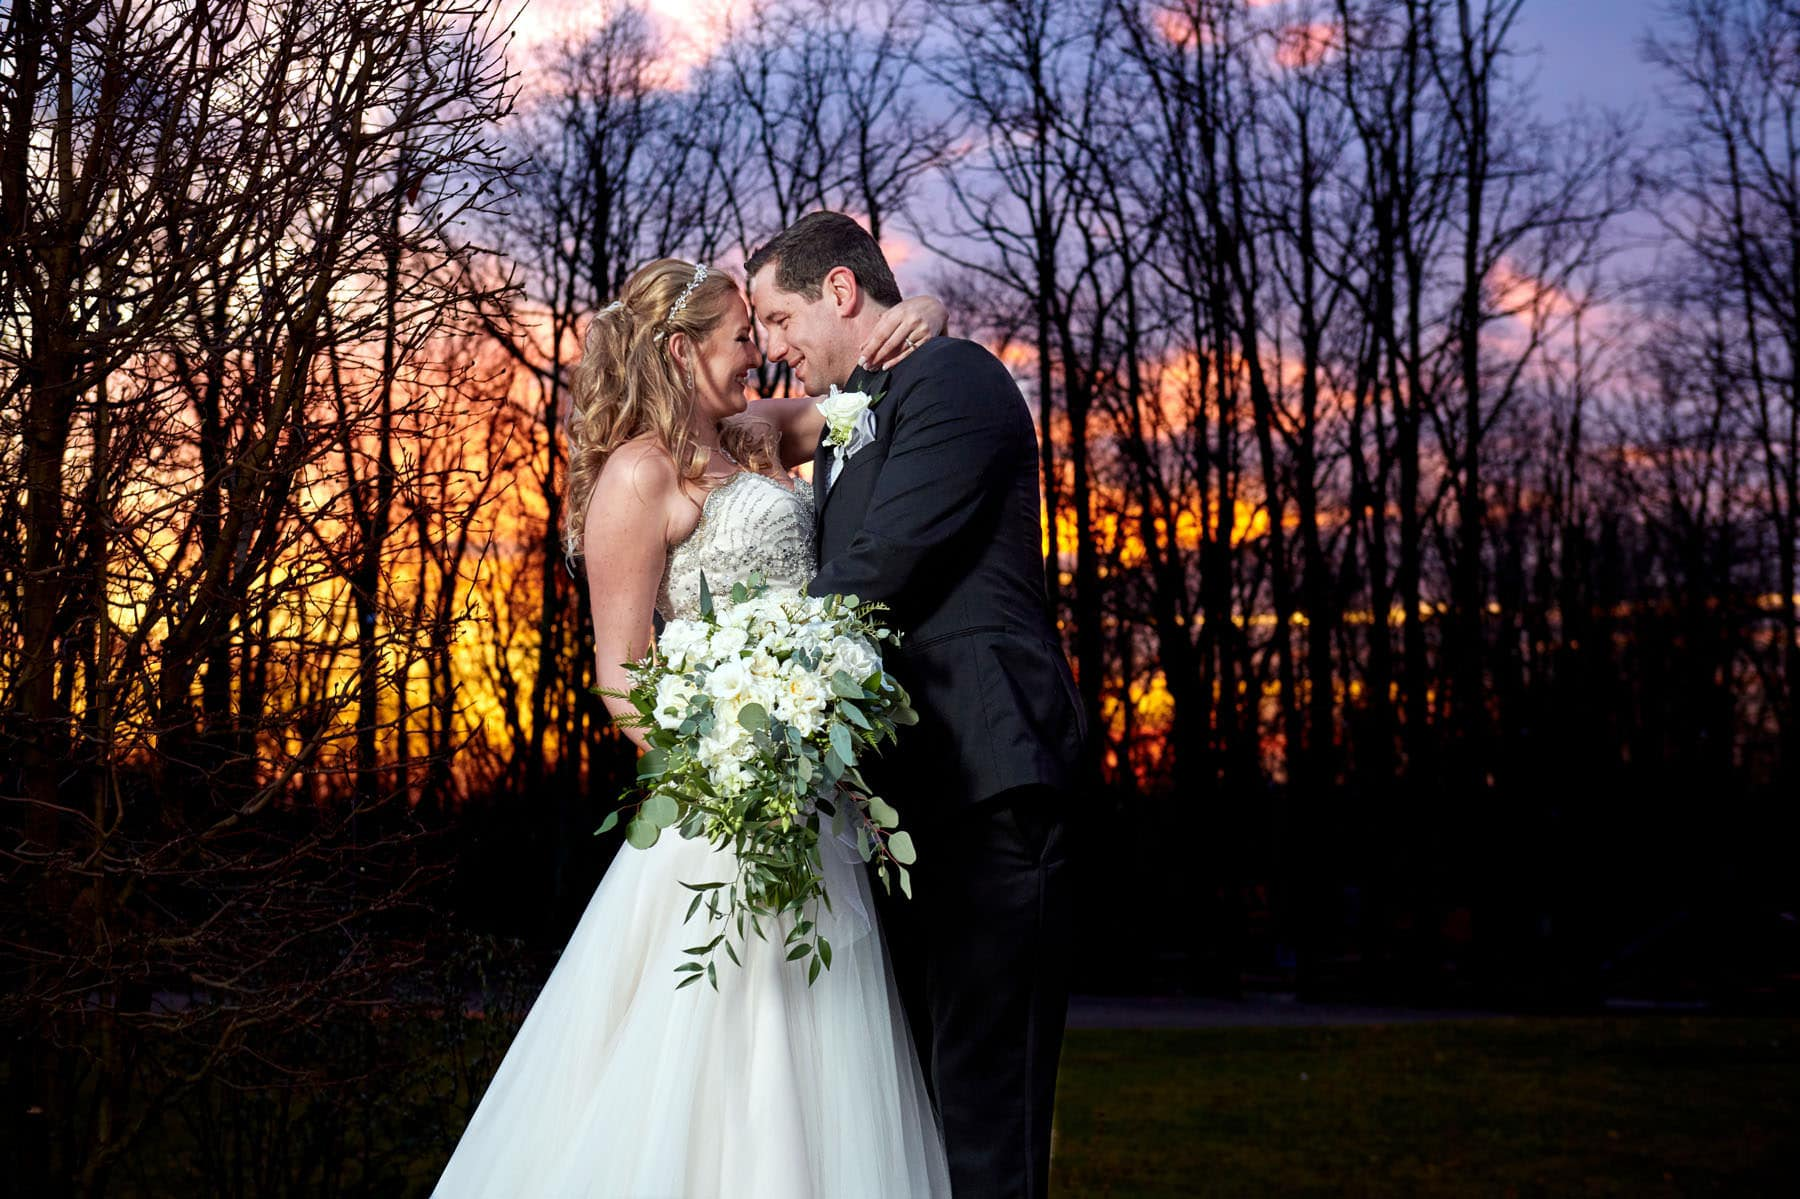 colorful sunset wedding photo at laurita winery